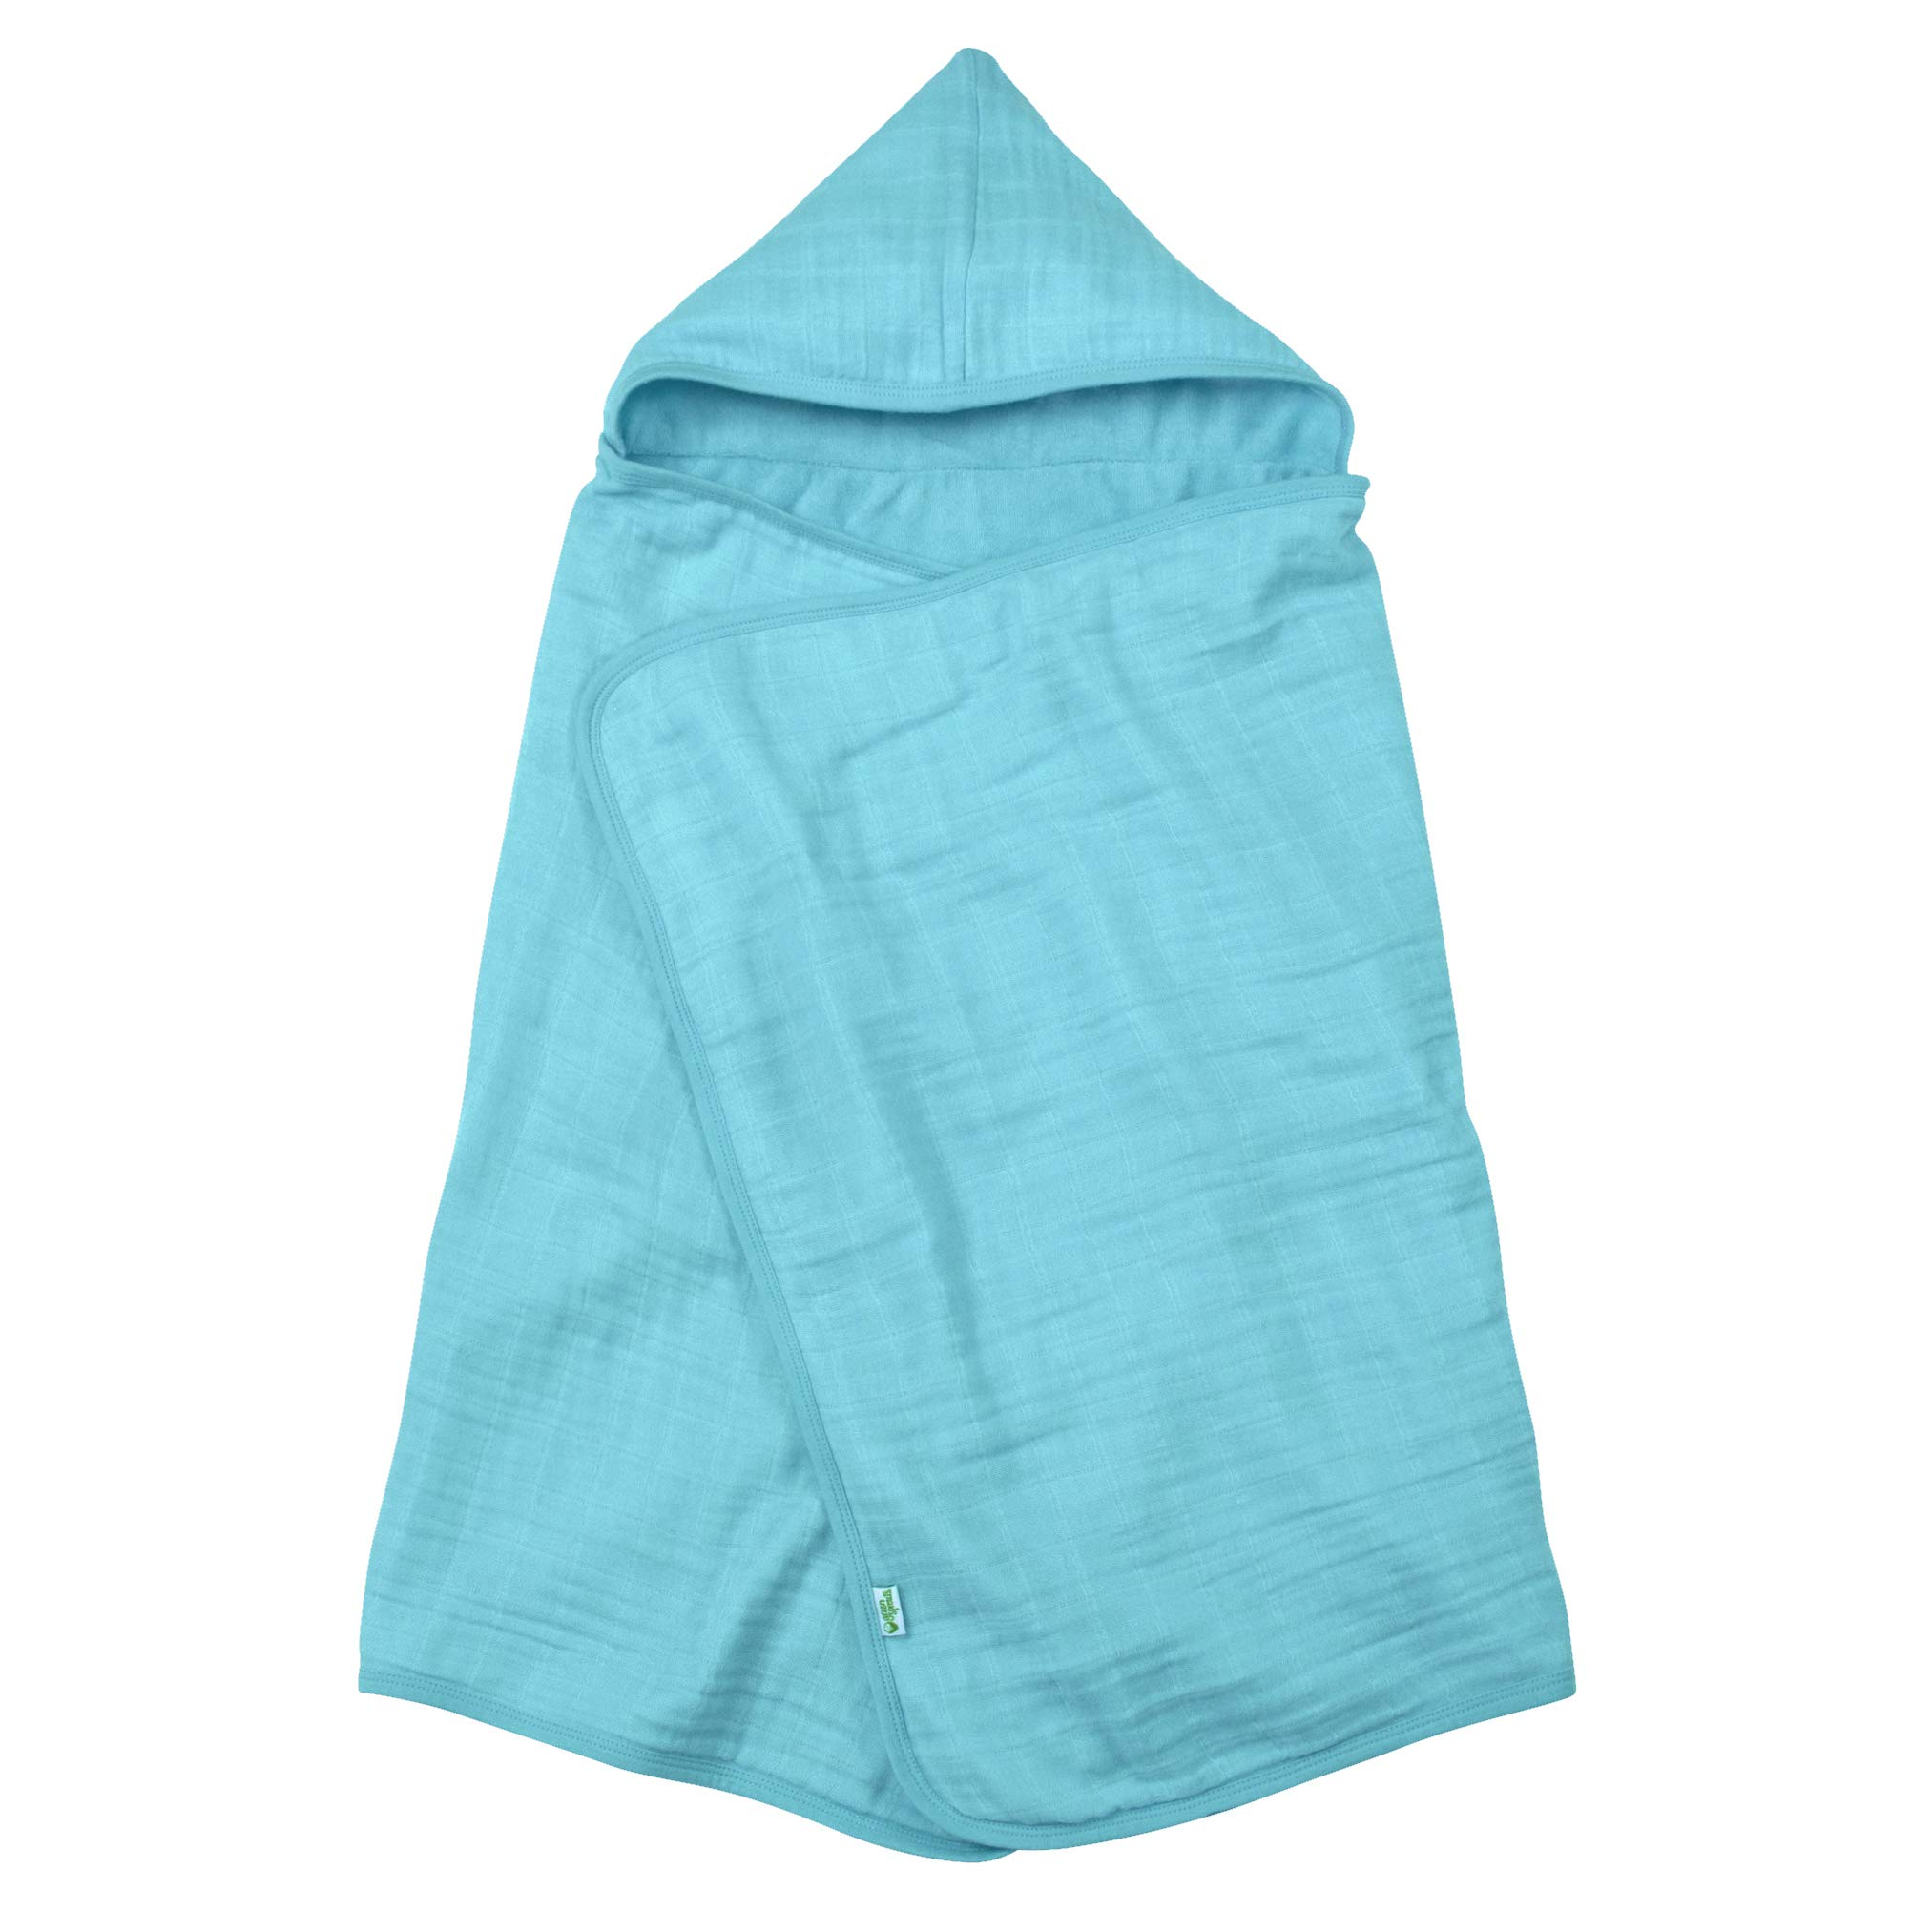 green sprouts Muslin Hooded Towel made from Organic Cotton   The perfect towel for bath, beach, or pool   Organic cotton muslin & knitted terry, Hand pockets help toddler dry independently